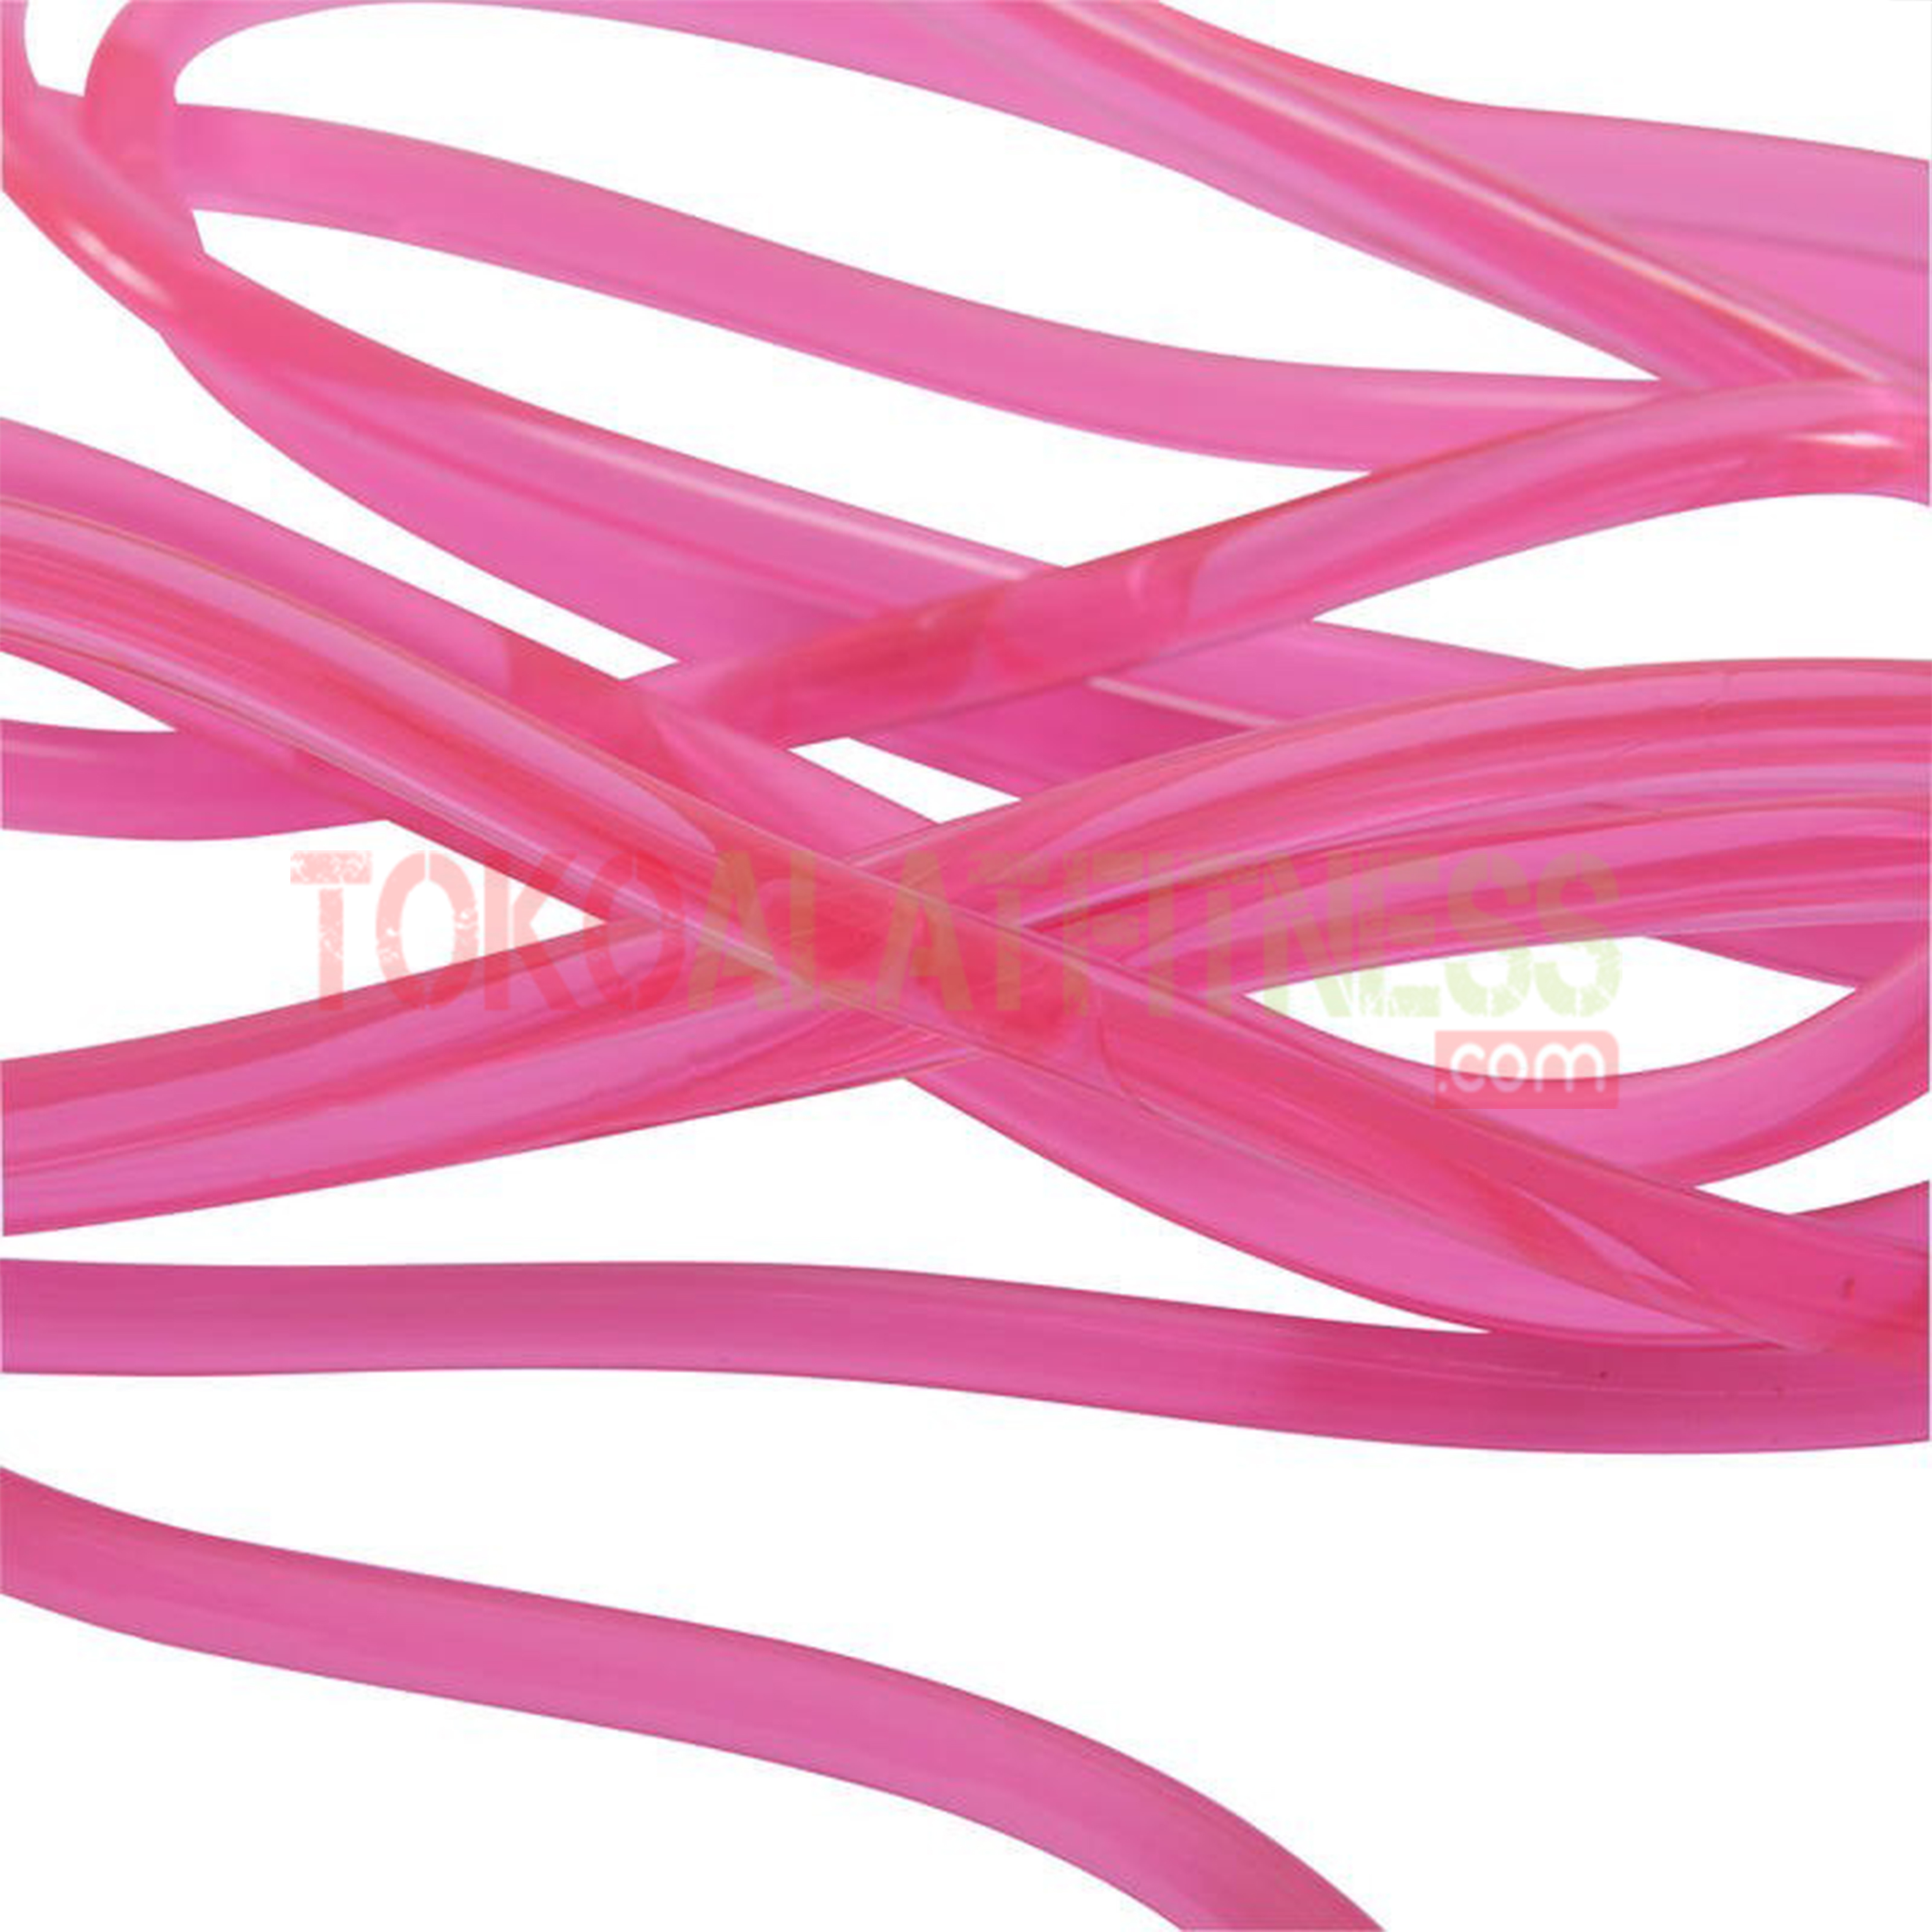 essential kids skipping rope pink wtm 5 - Simple Jump Rope Pink Domyos